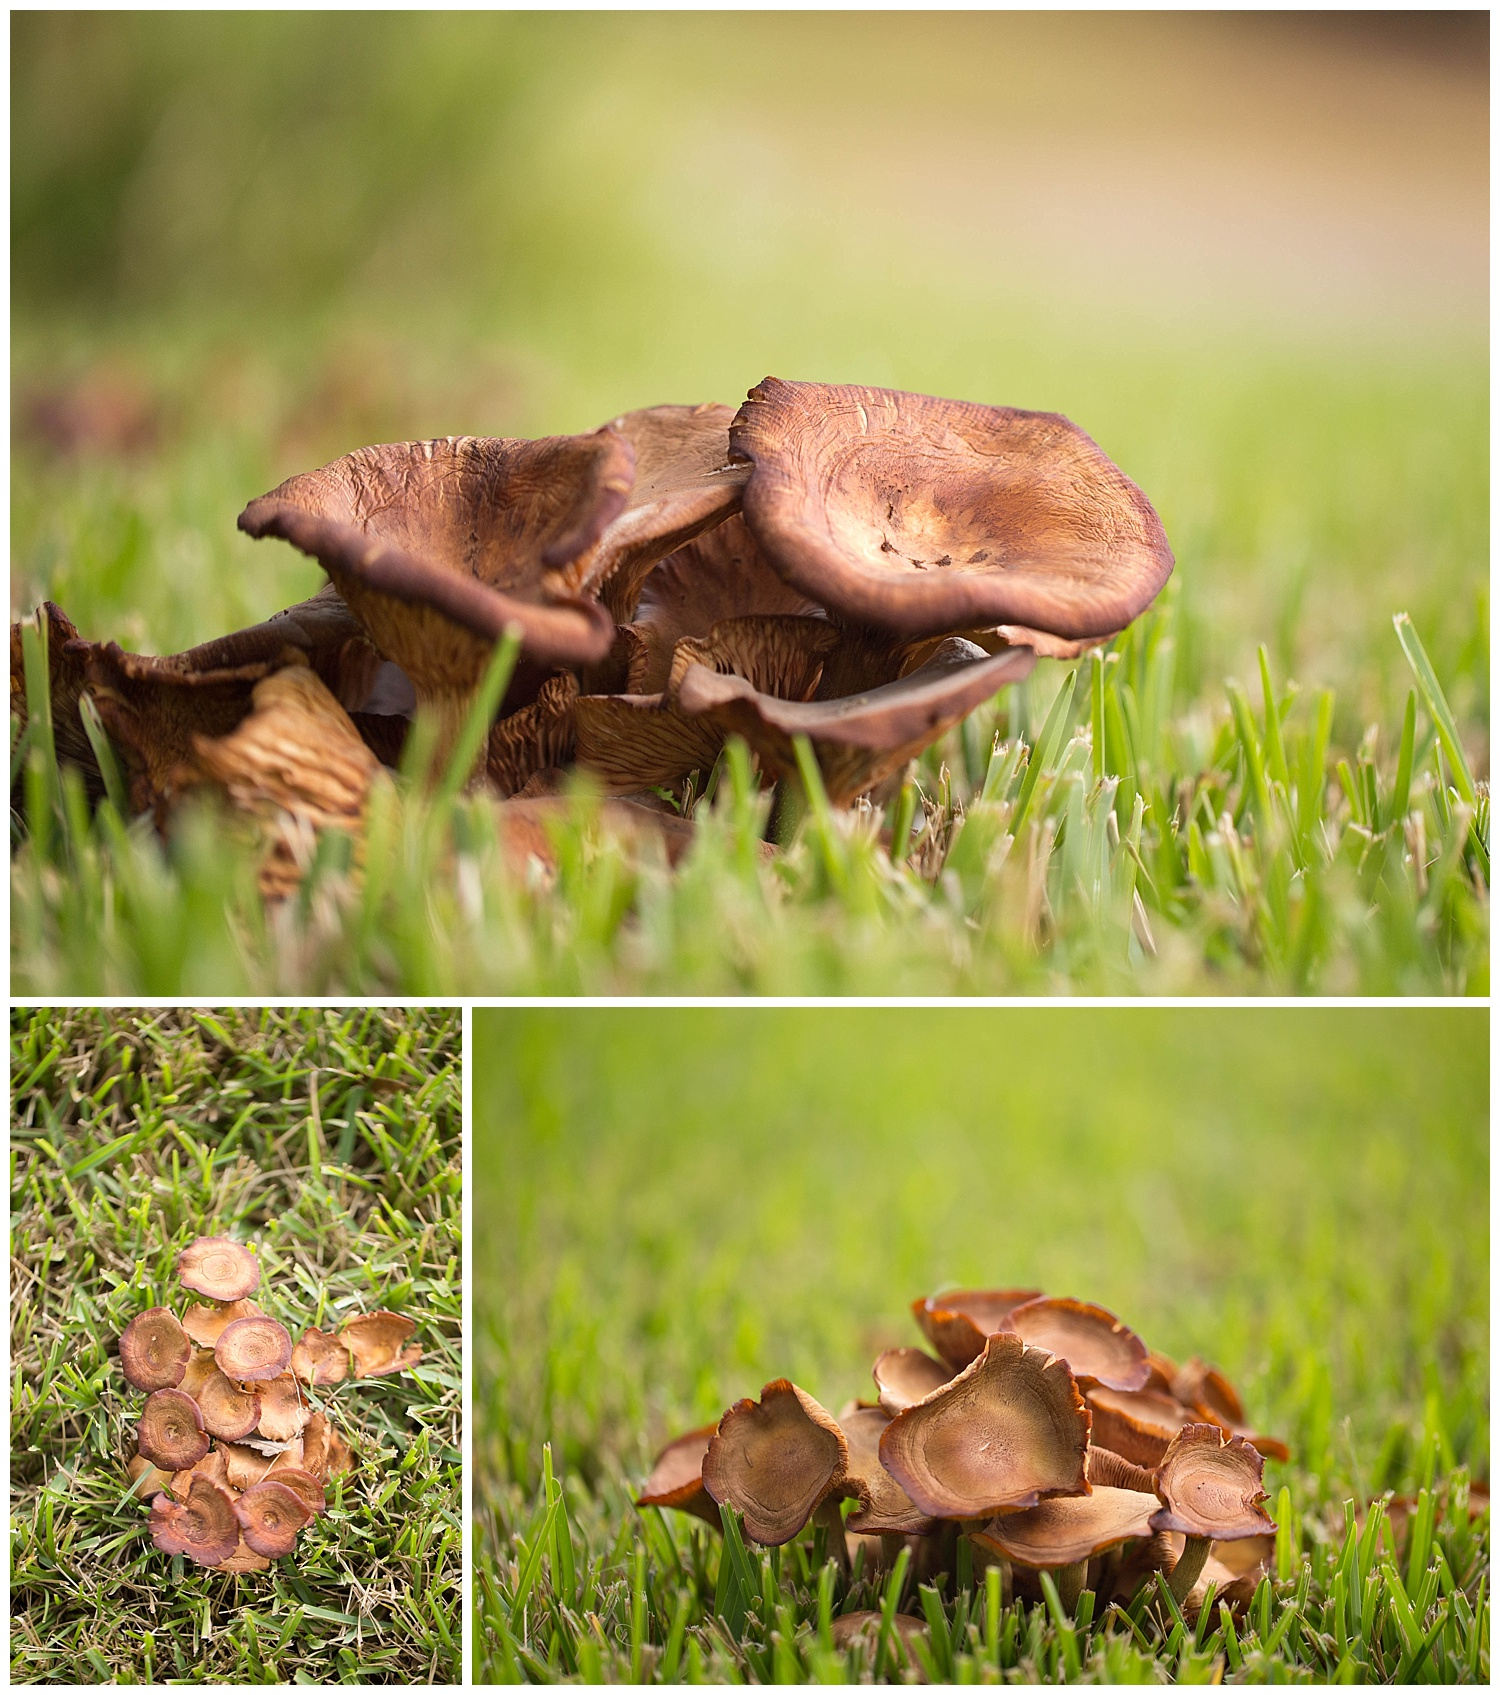 mushrooms after rain in Southern Mississippi